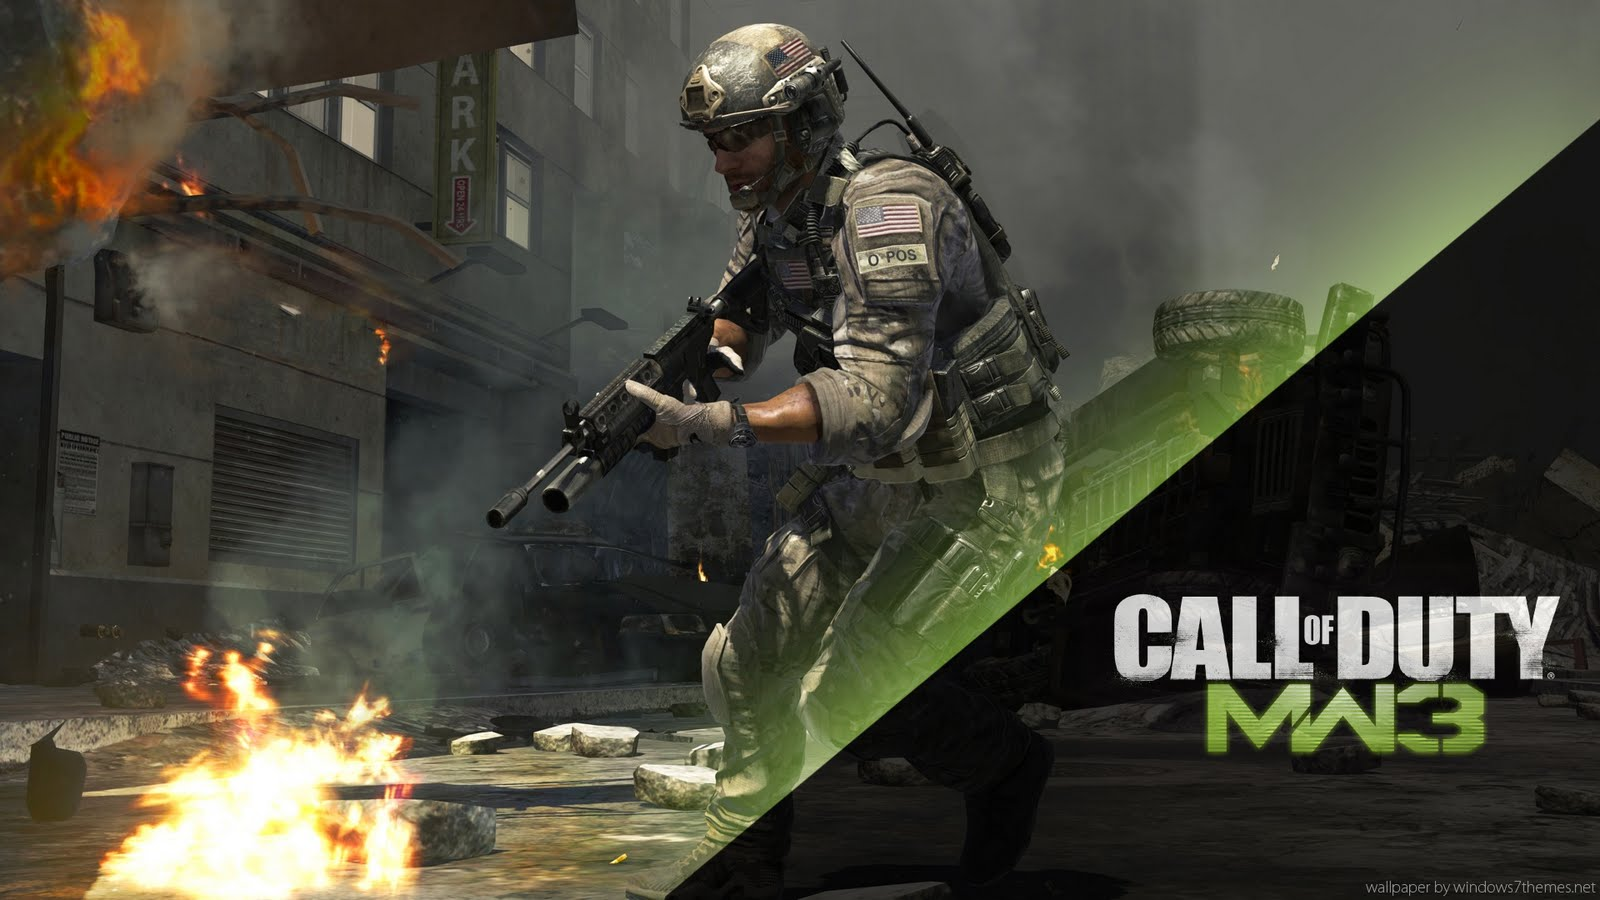 http://4.bp.blogspot.com/-ilA9ZGd1qeI/Tf2zXe7VzJI/AAAAAAAAACQ/nnMHCTGMg8U/s1600/call-of-duty-modern-warfare-3-hd-wallpaper-1.jpg